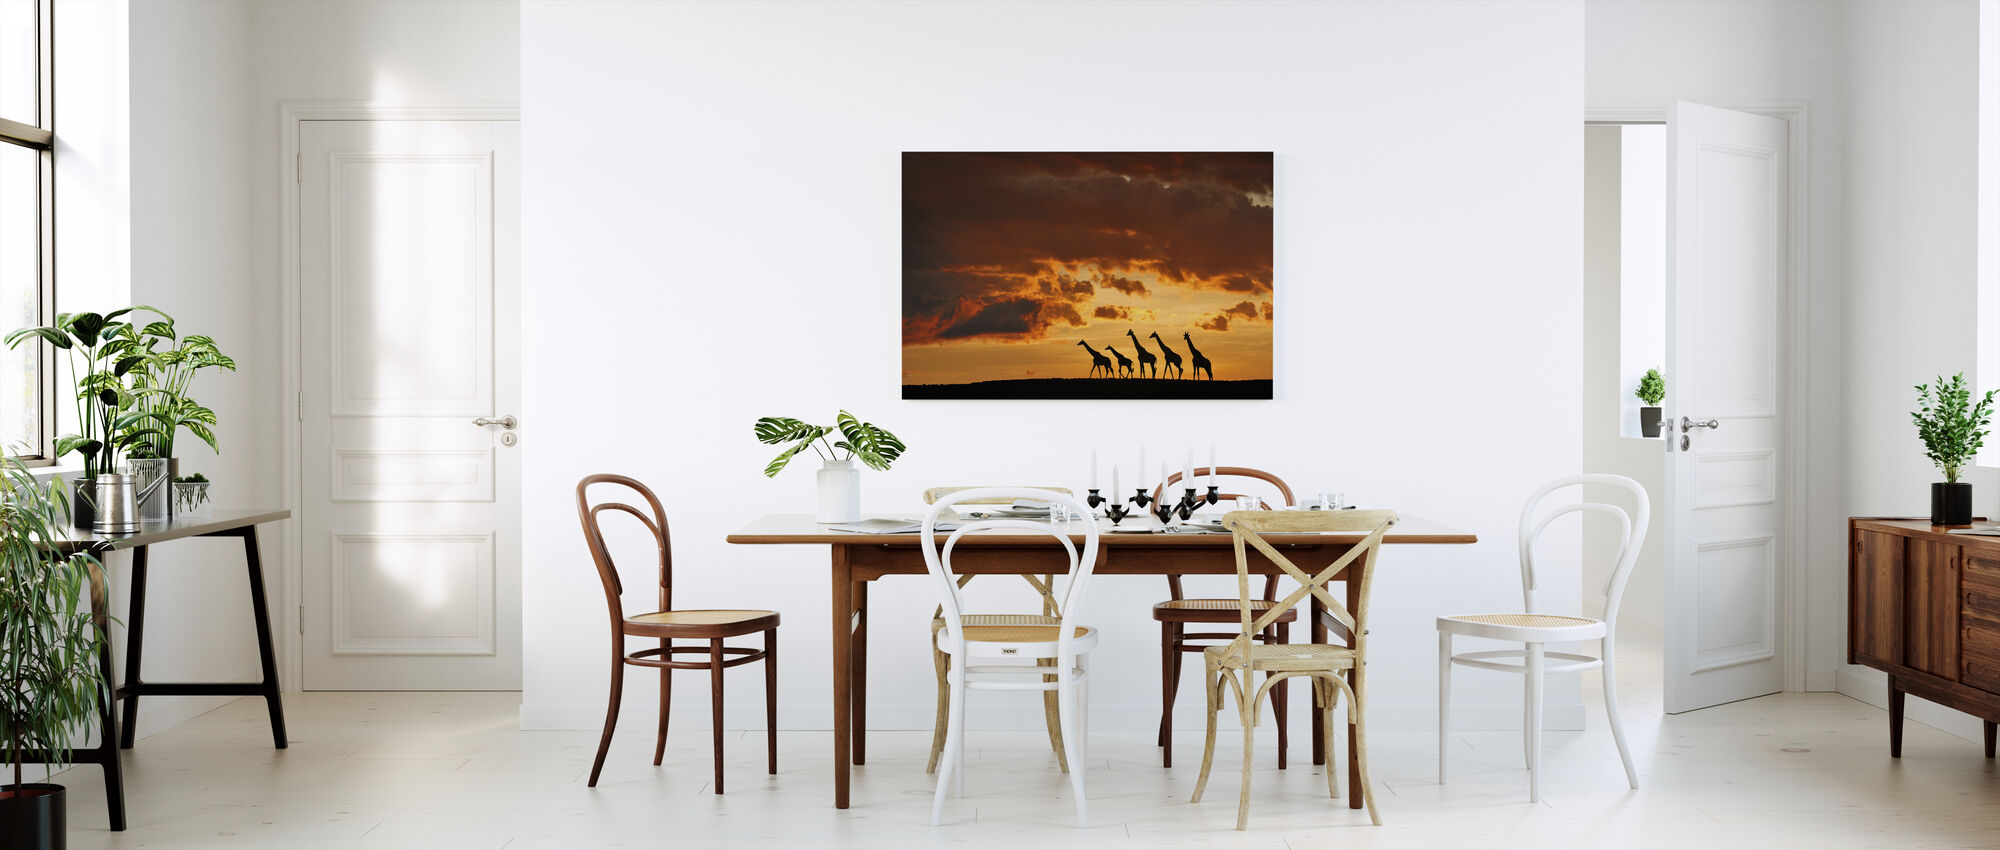 Five Giraffes - Canvas print - Kitchen